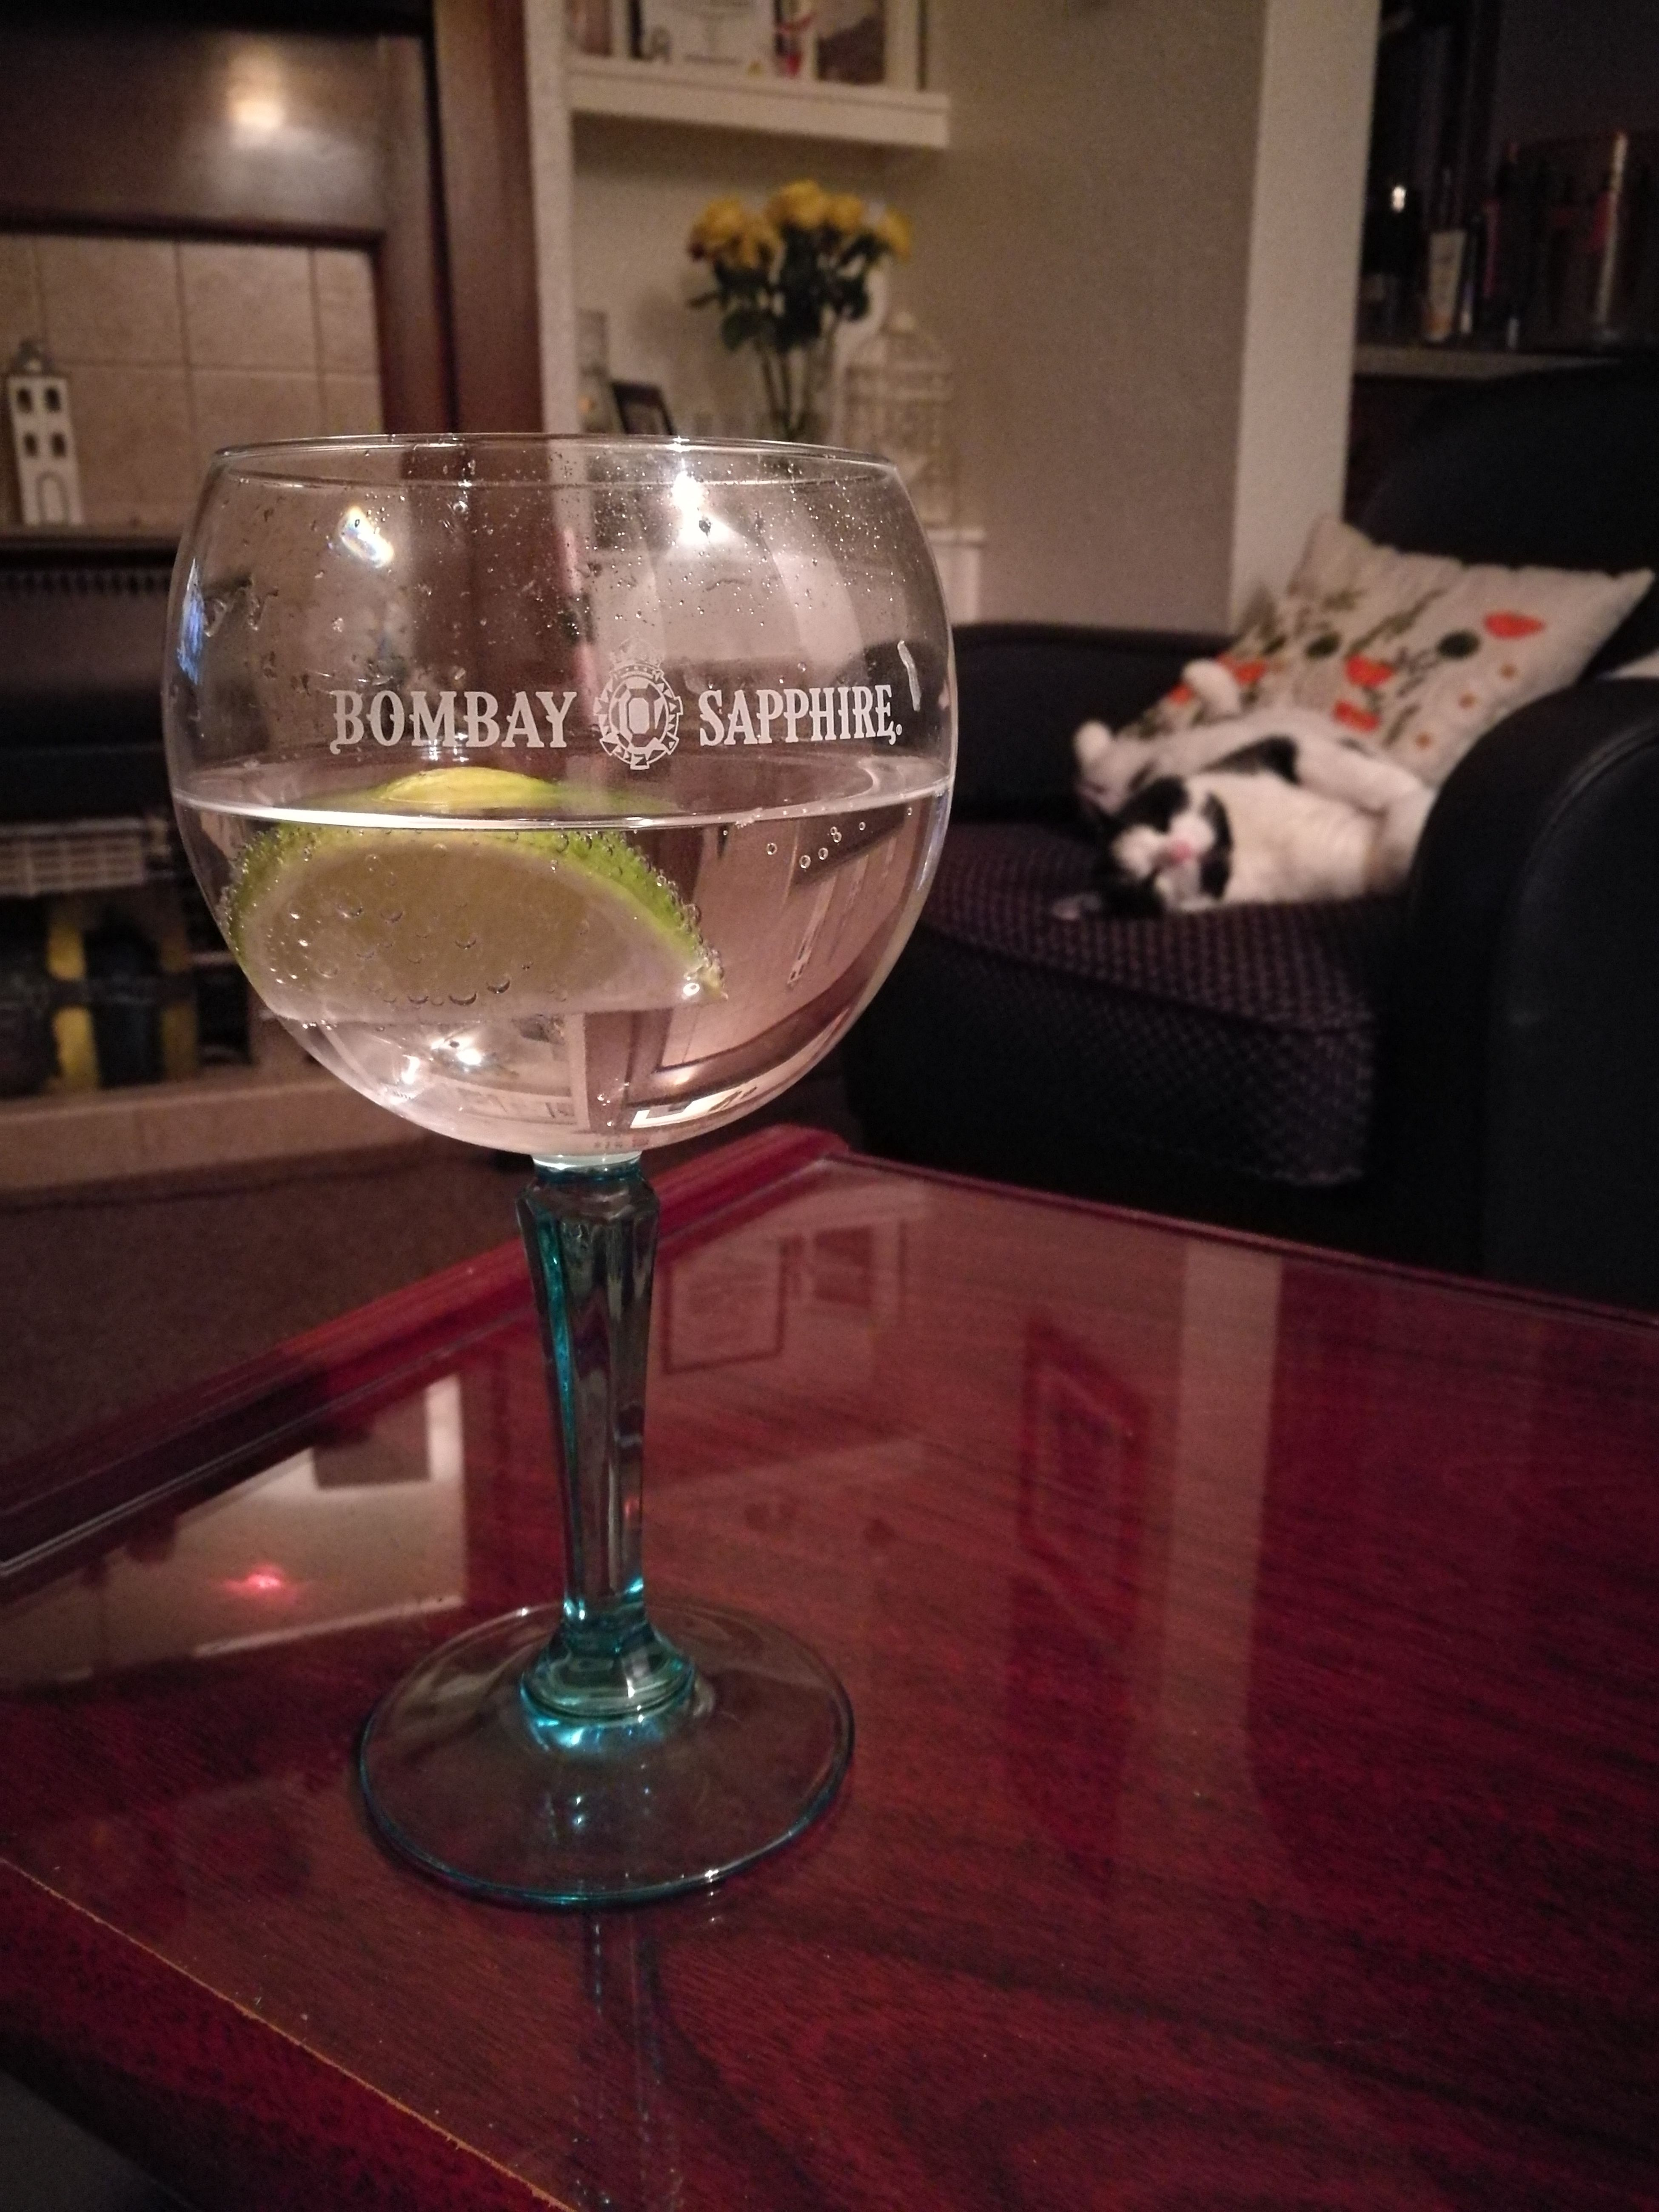 Girlsnightin Just Me And My Cat Movies Films Snug Cosy Cat Kitty Cat Sleepy Kitty Gin And Tonic GIN Tonic Bombay Sapphire Lime TasteSensation Home Sweet Home Homeiswheremyheartis